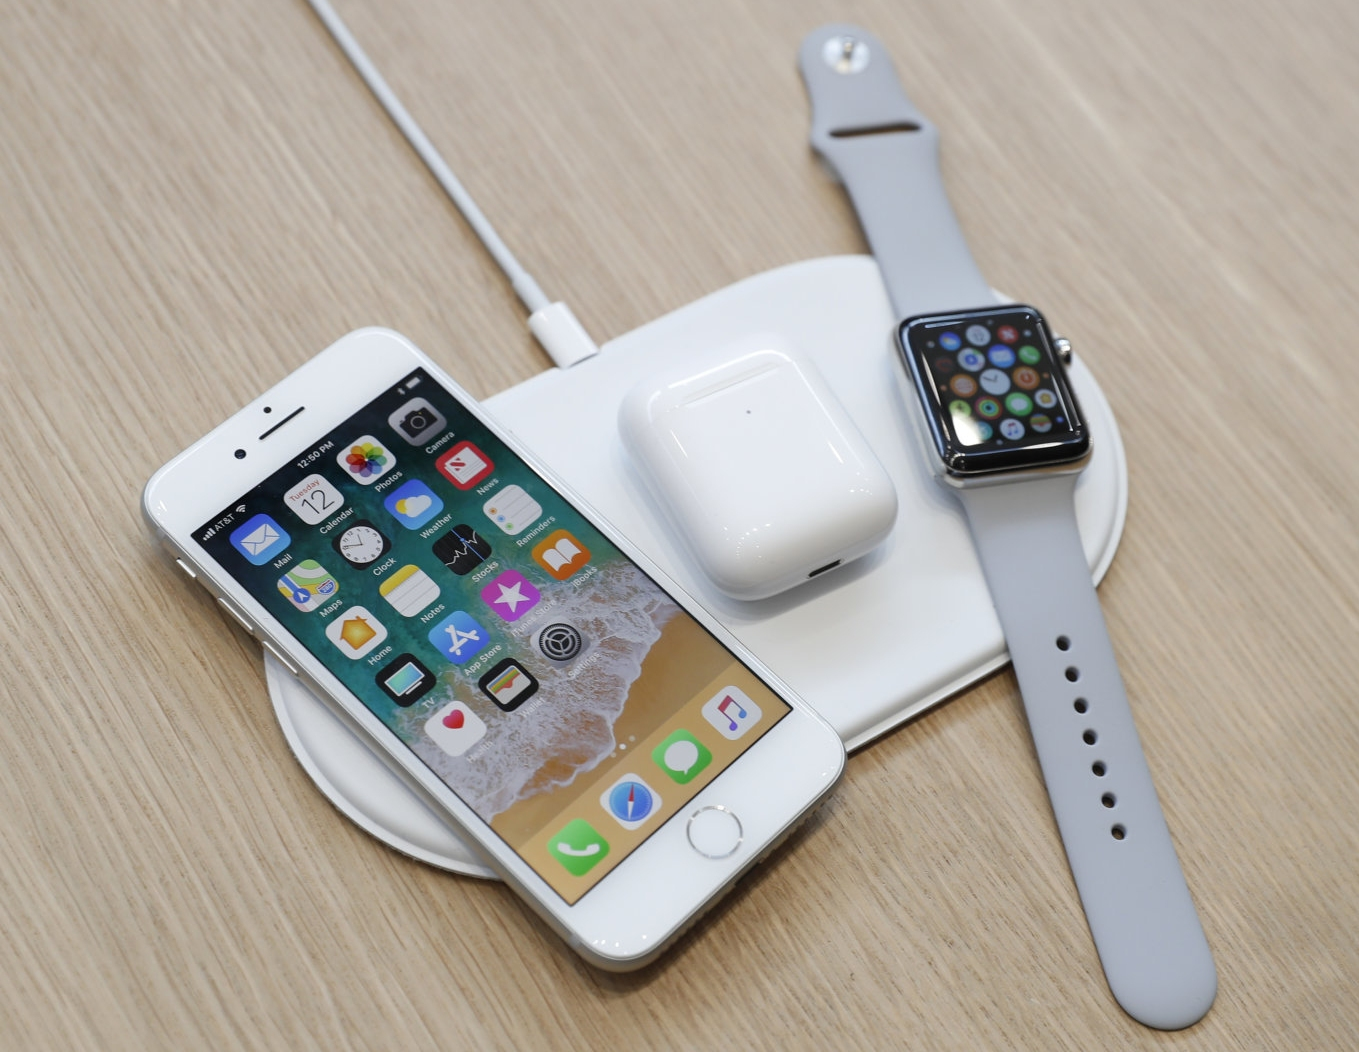 Apple met with technical hurdles in developing AirPower wireless charging mat